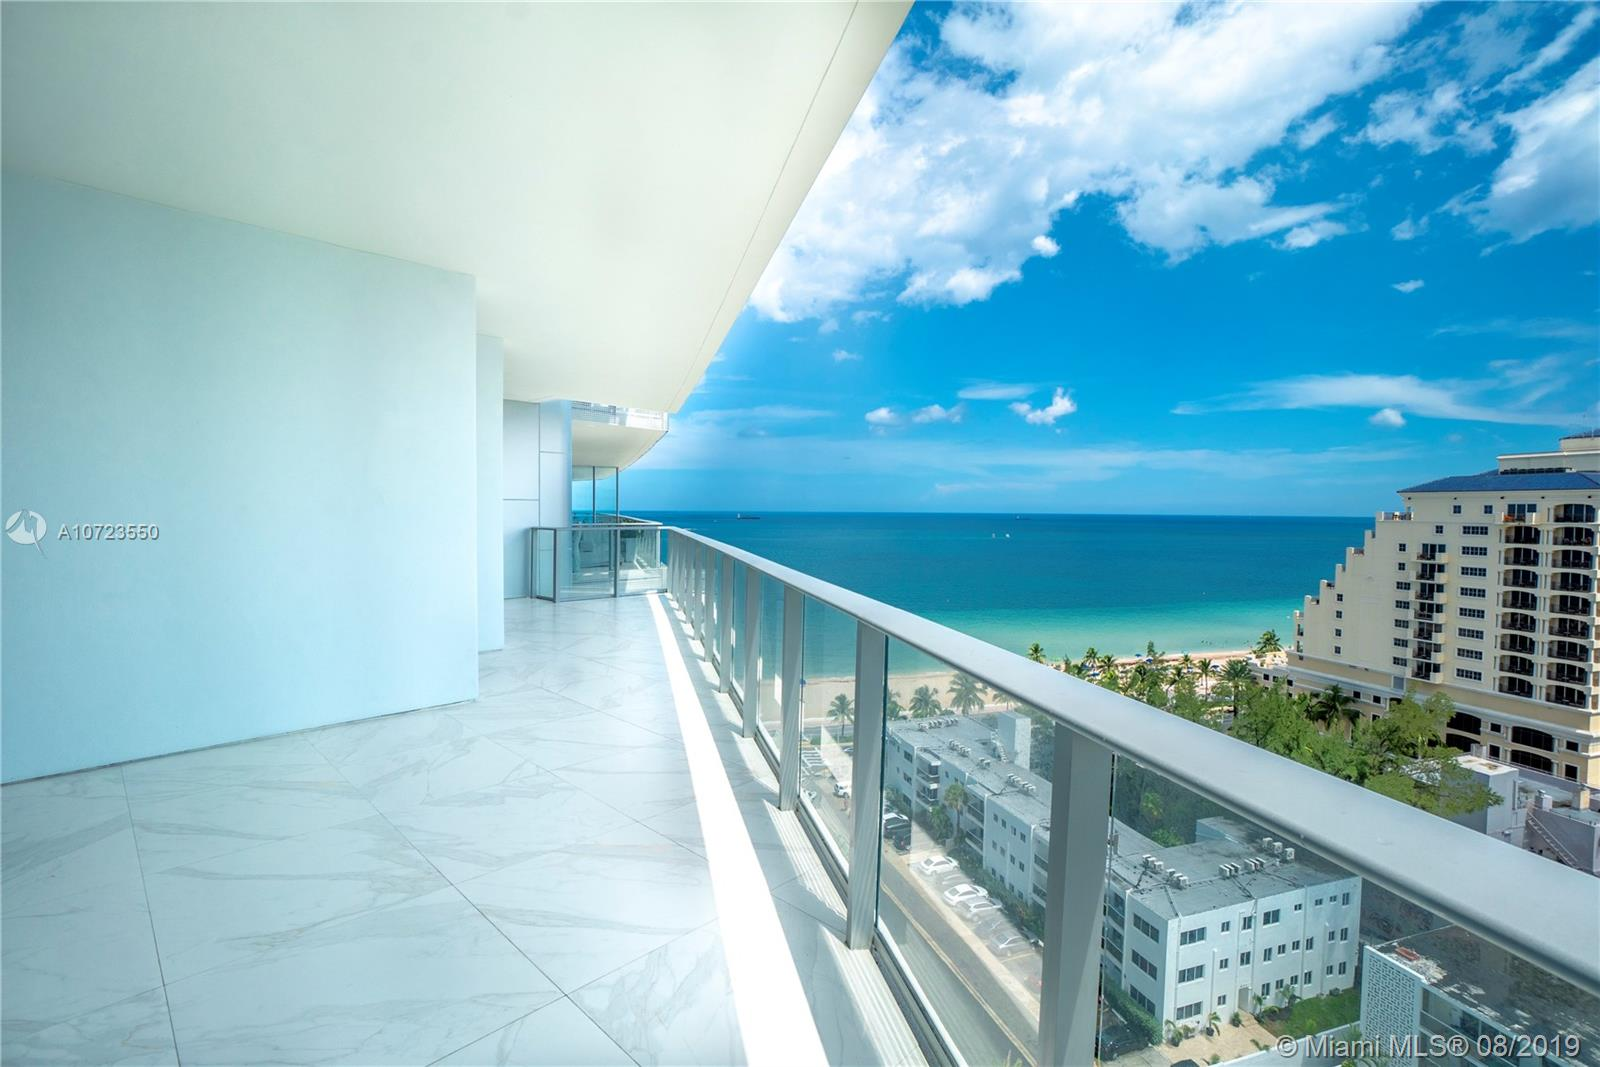 Amazing Oceanfront Corner unit on a luxurious Paramount - Fort Lauderdale. Large (2,632 SF) 3 Bedrooms, 3.5 Baths, Private Elevators, Oversize Balcony (726 SF), Completely Furnished. Paramount is a 5 Star complex with fitness center, TV Room, Massage, Sauna, Pool with Cabanas and private beach services. MUST SEE !!!